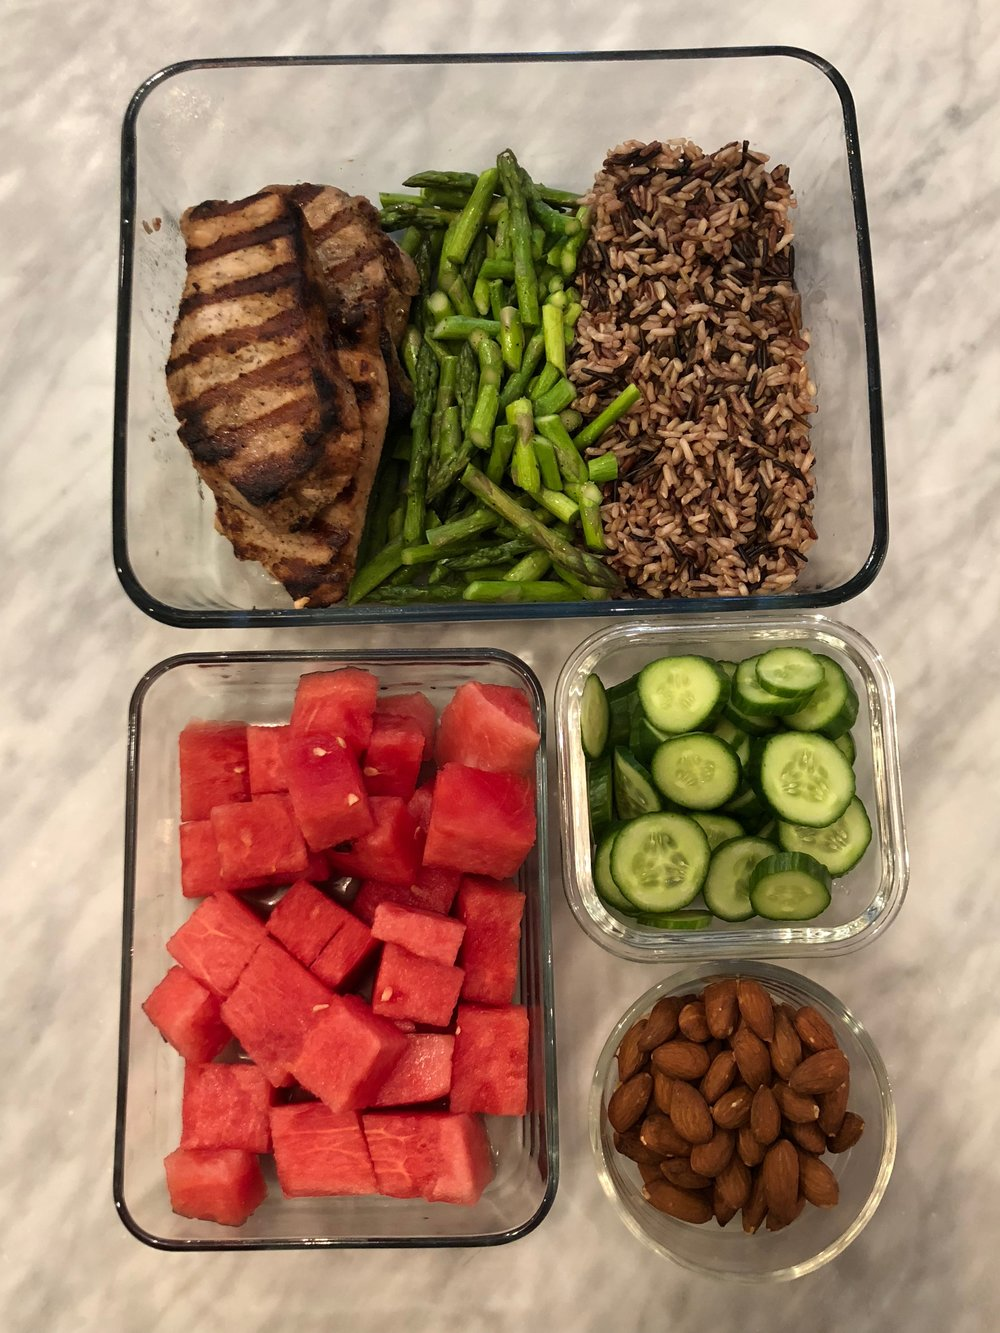 Lunch+ - Grill your proteins, and build up your body not tear it down.